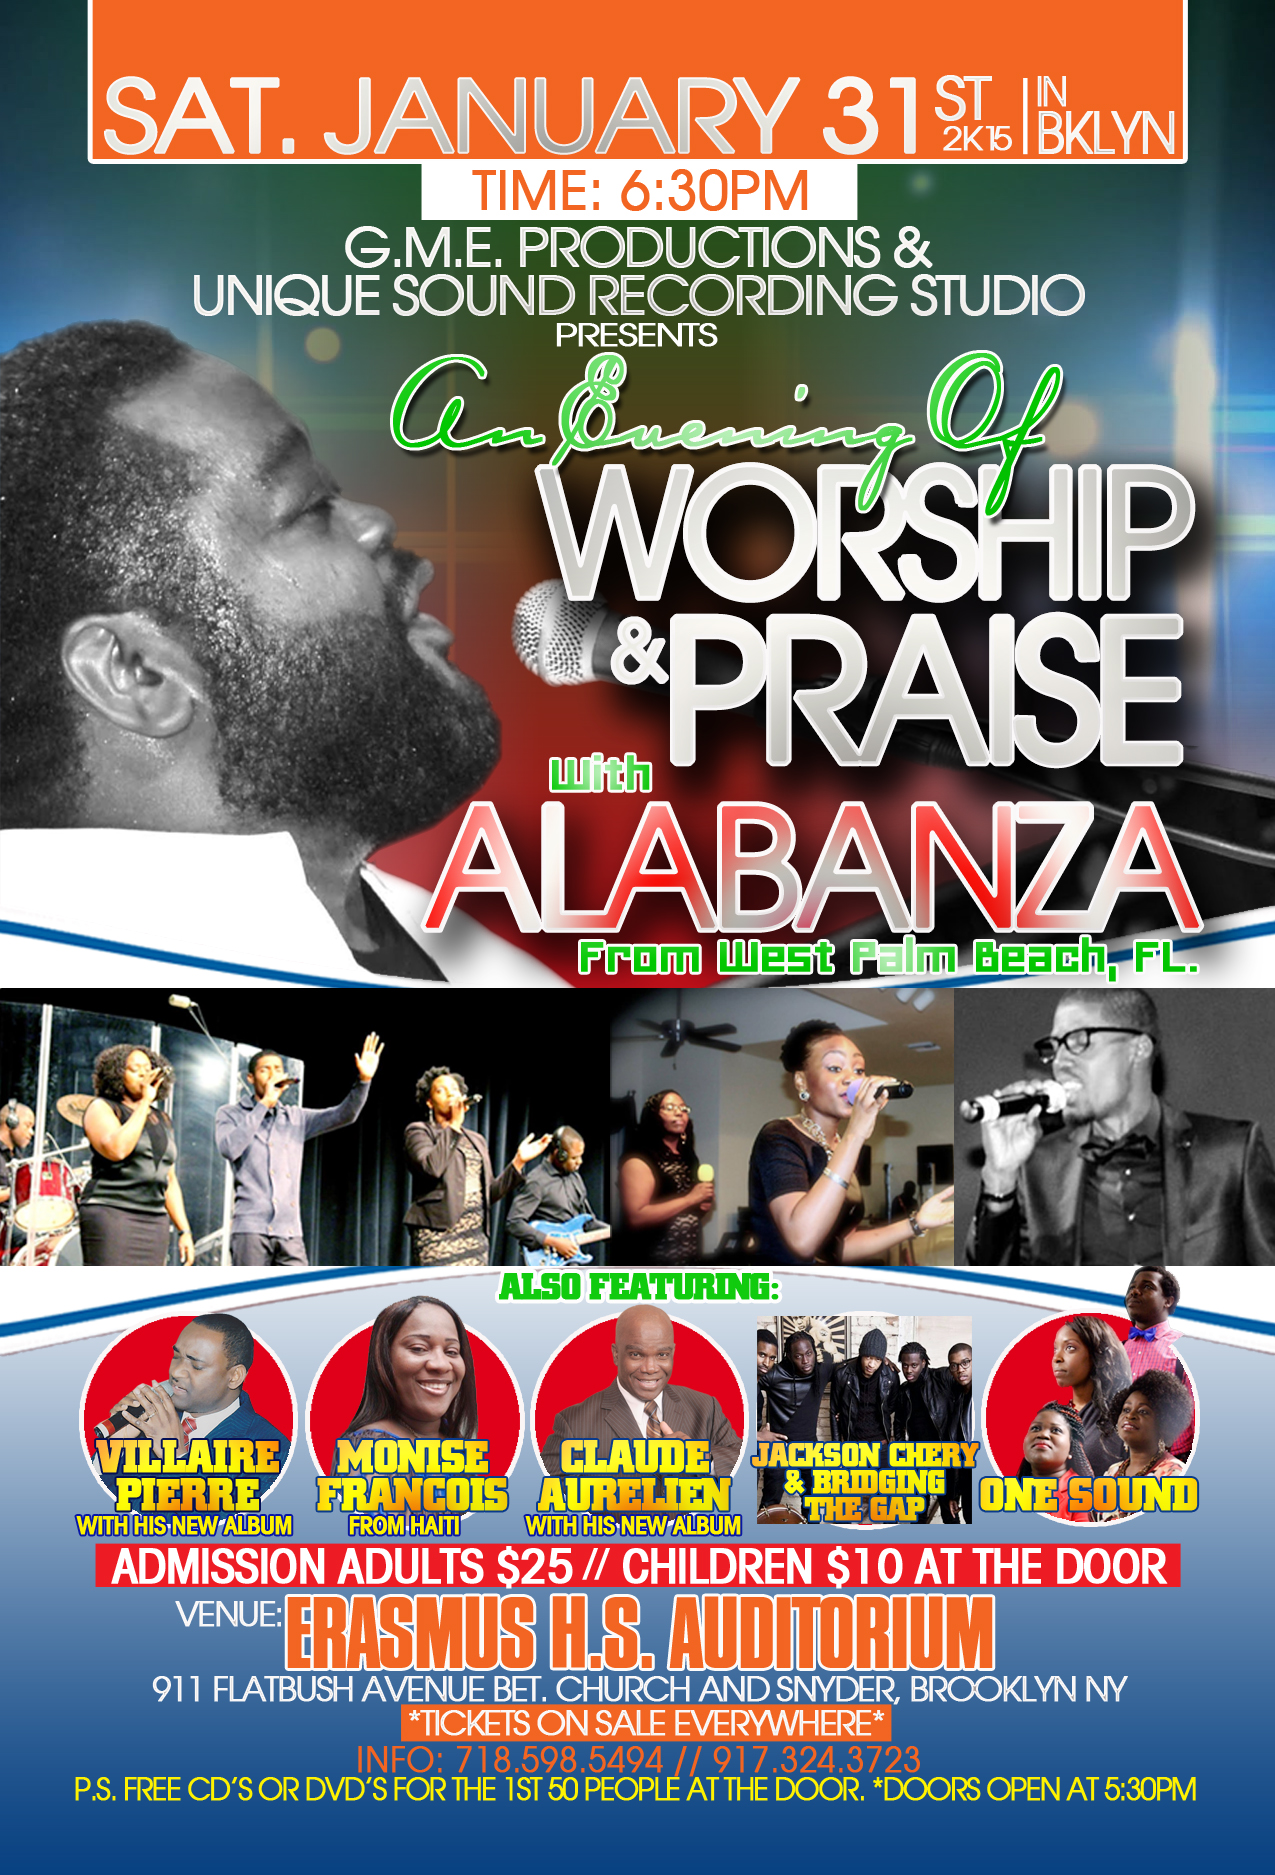 Alabanza in Concert Saturday January 31st & Sunday February 1st 2015 in NY Event